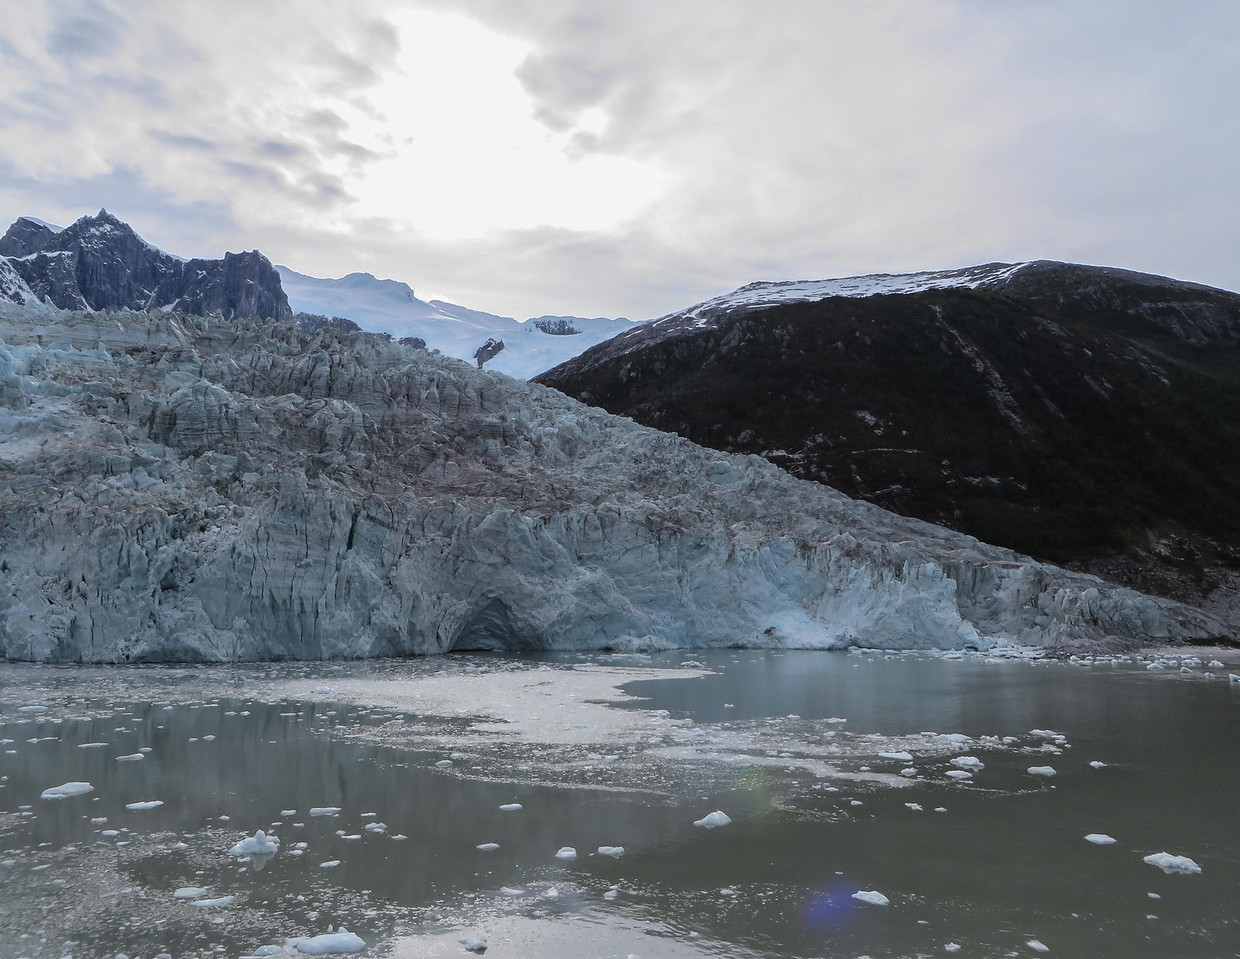 View of the Pia Glacier from the shore